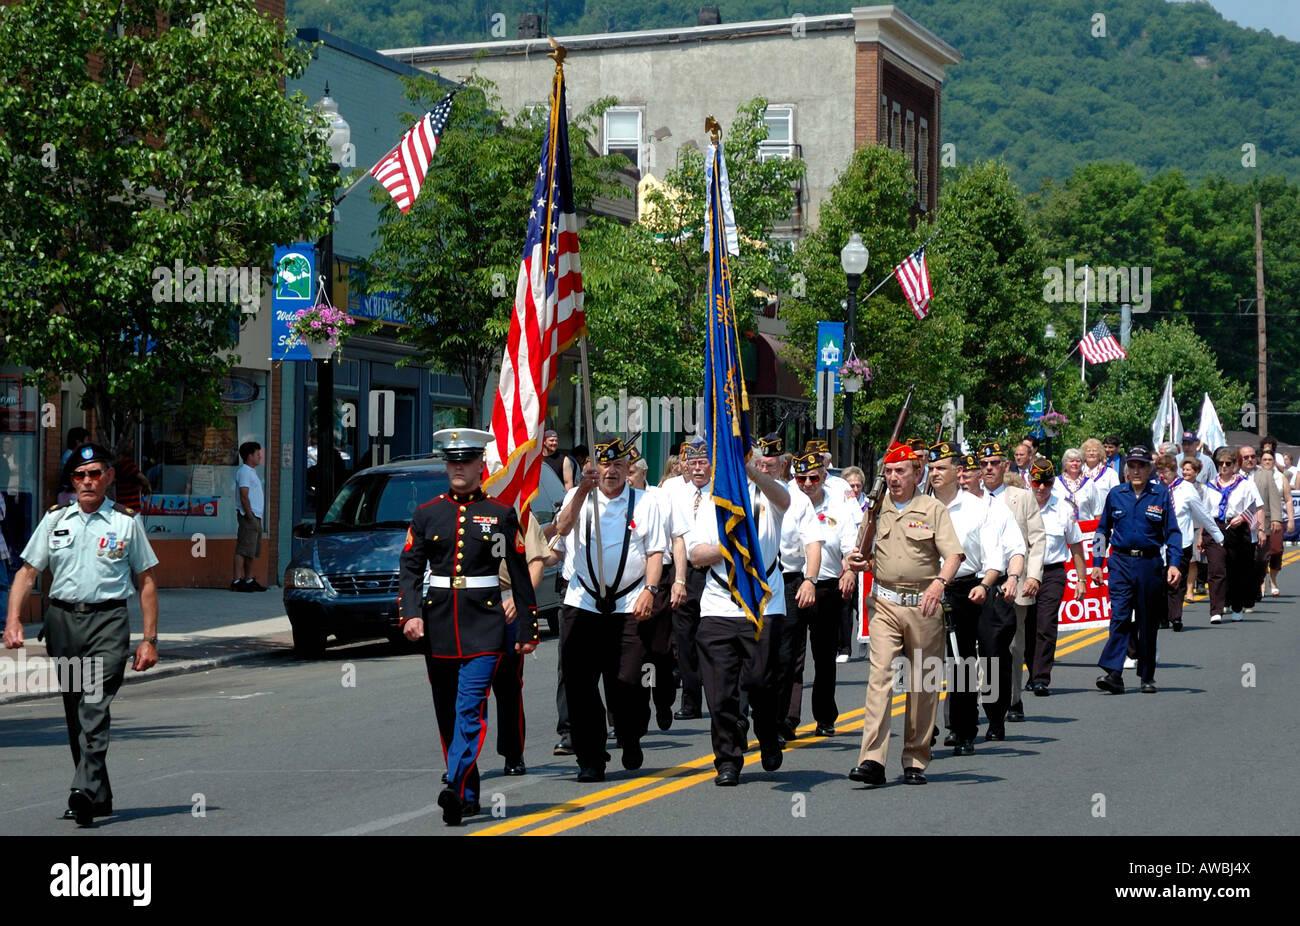 Small town Memorial Day parade Honor guard and veterans participate in a Memorial Day parade on Main Street Suffern - Stock Image